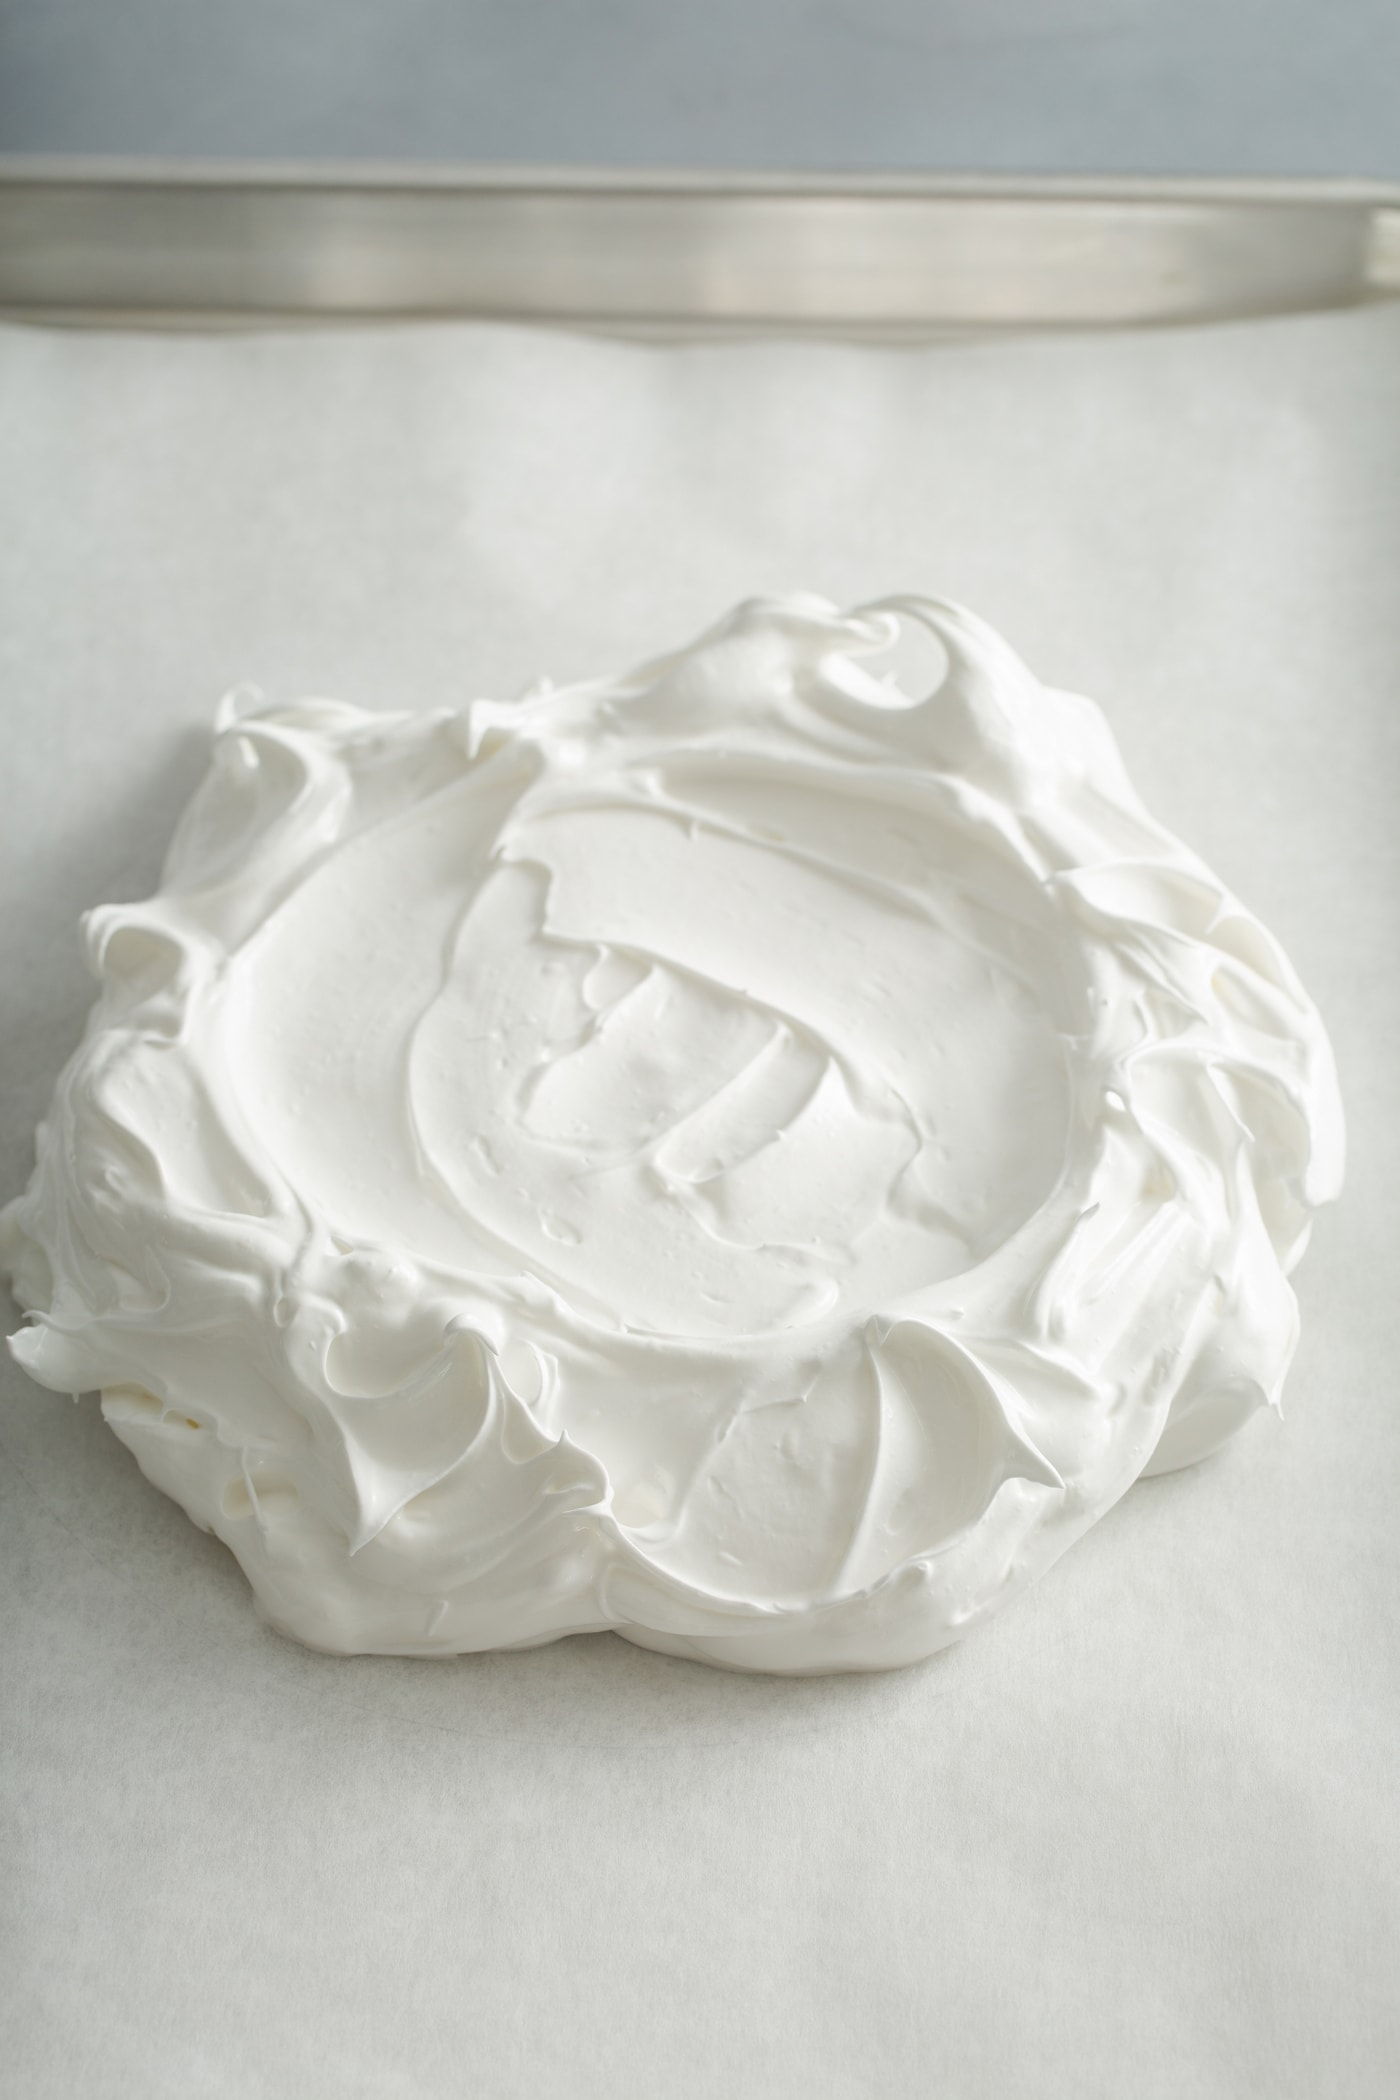 Meringue that has been formed into a disk with a few fancy swirls and peaks.